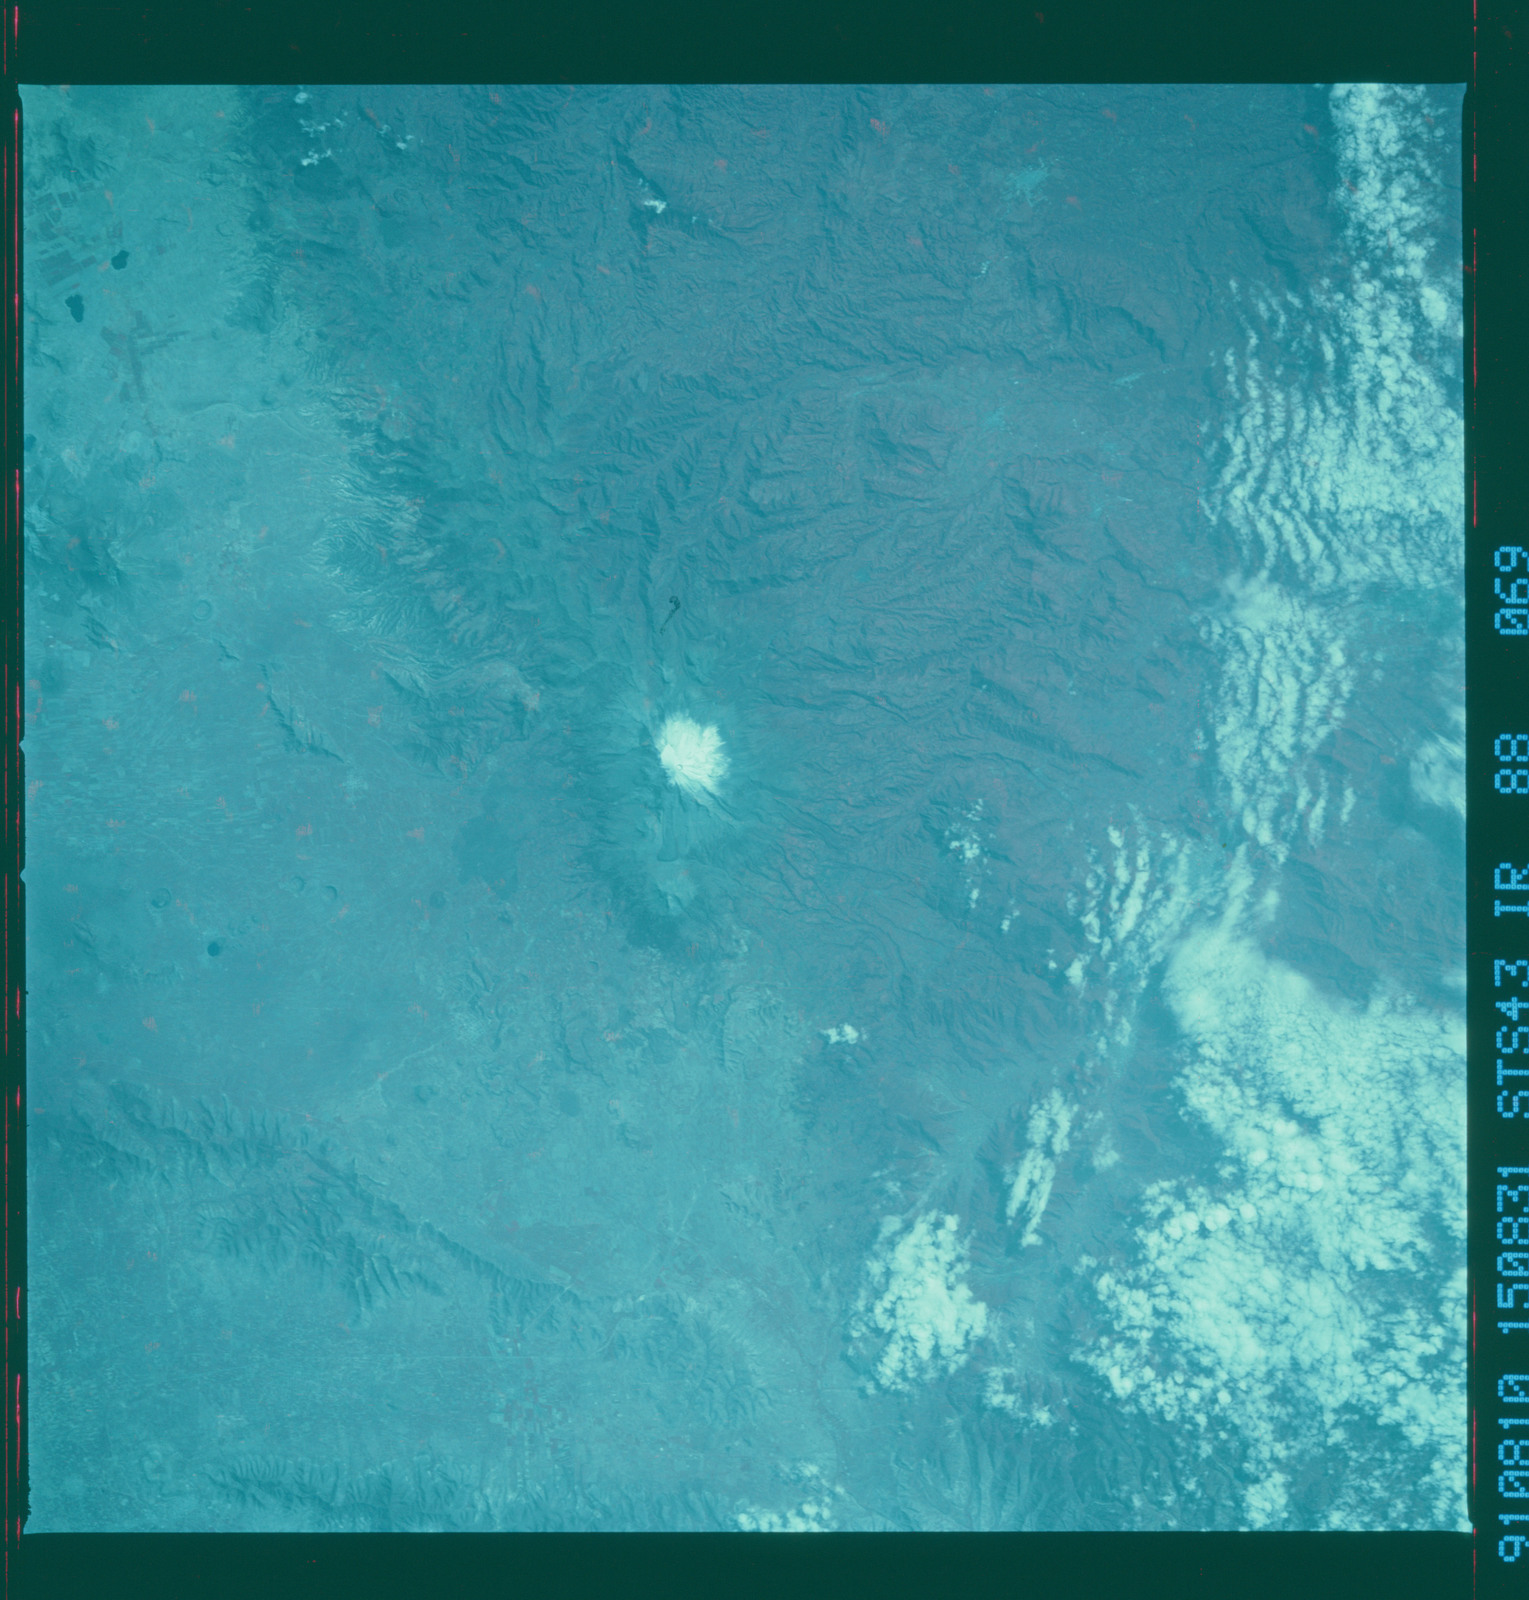 S43-88-069 - STS-043 - STS-43 earth observations